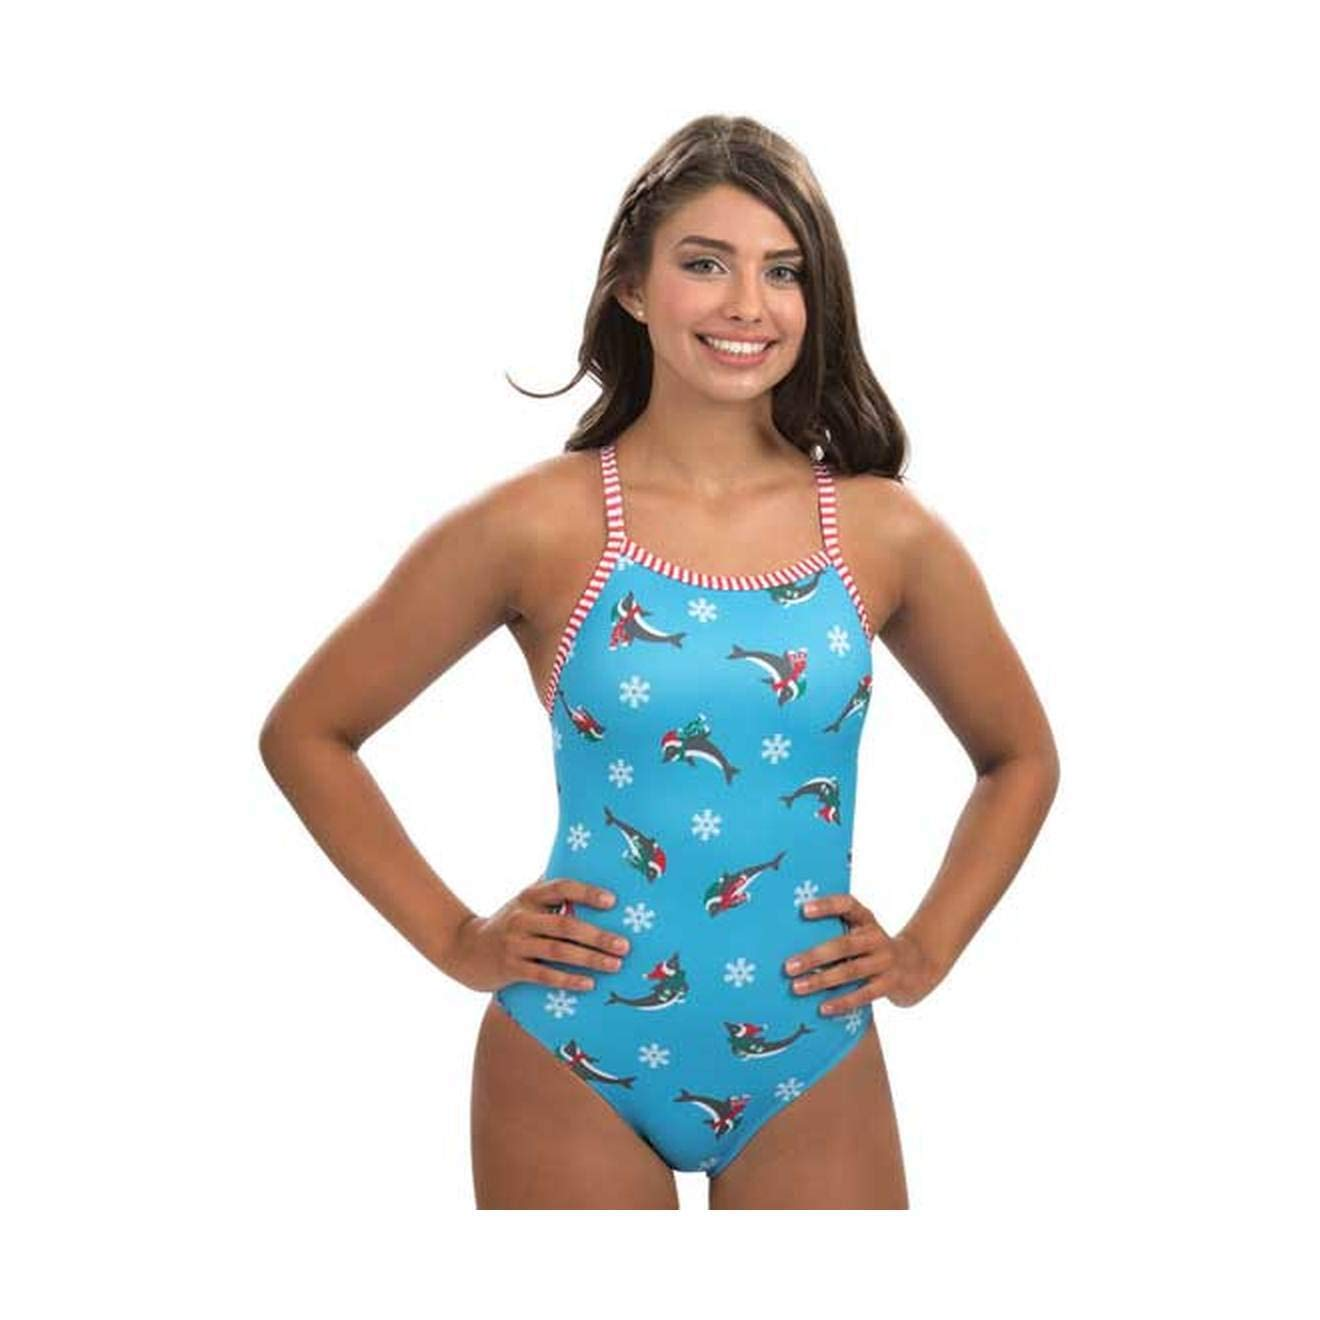 ecff39675f68b Dolfin Women s Uglies String Back One Piece Swimsuit product image